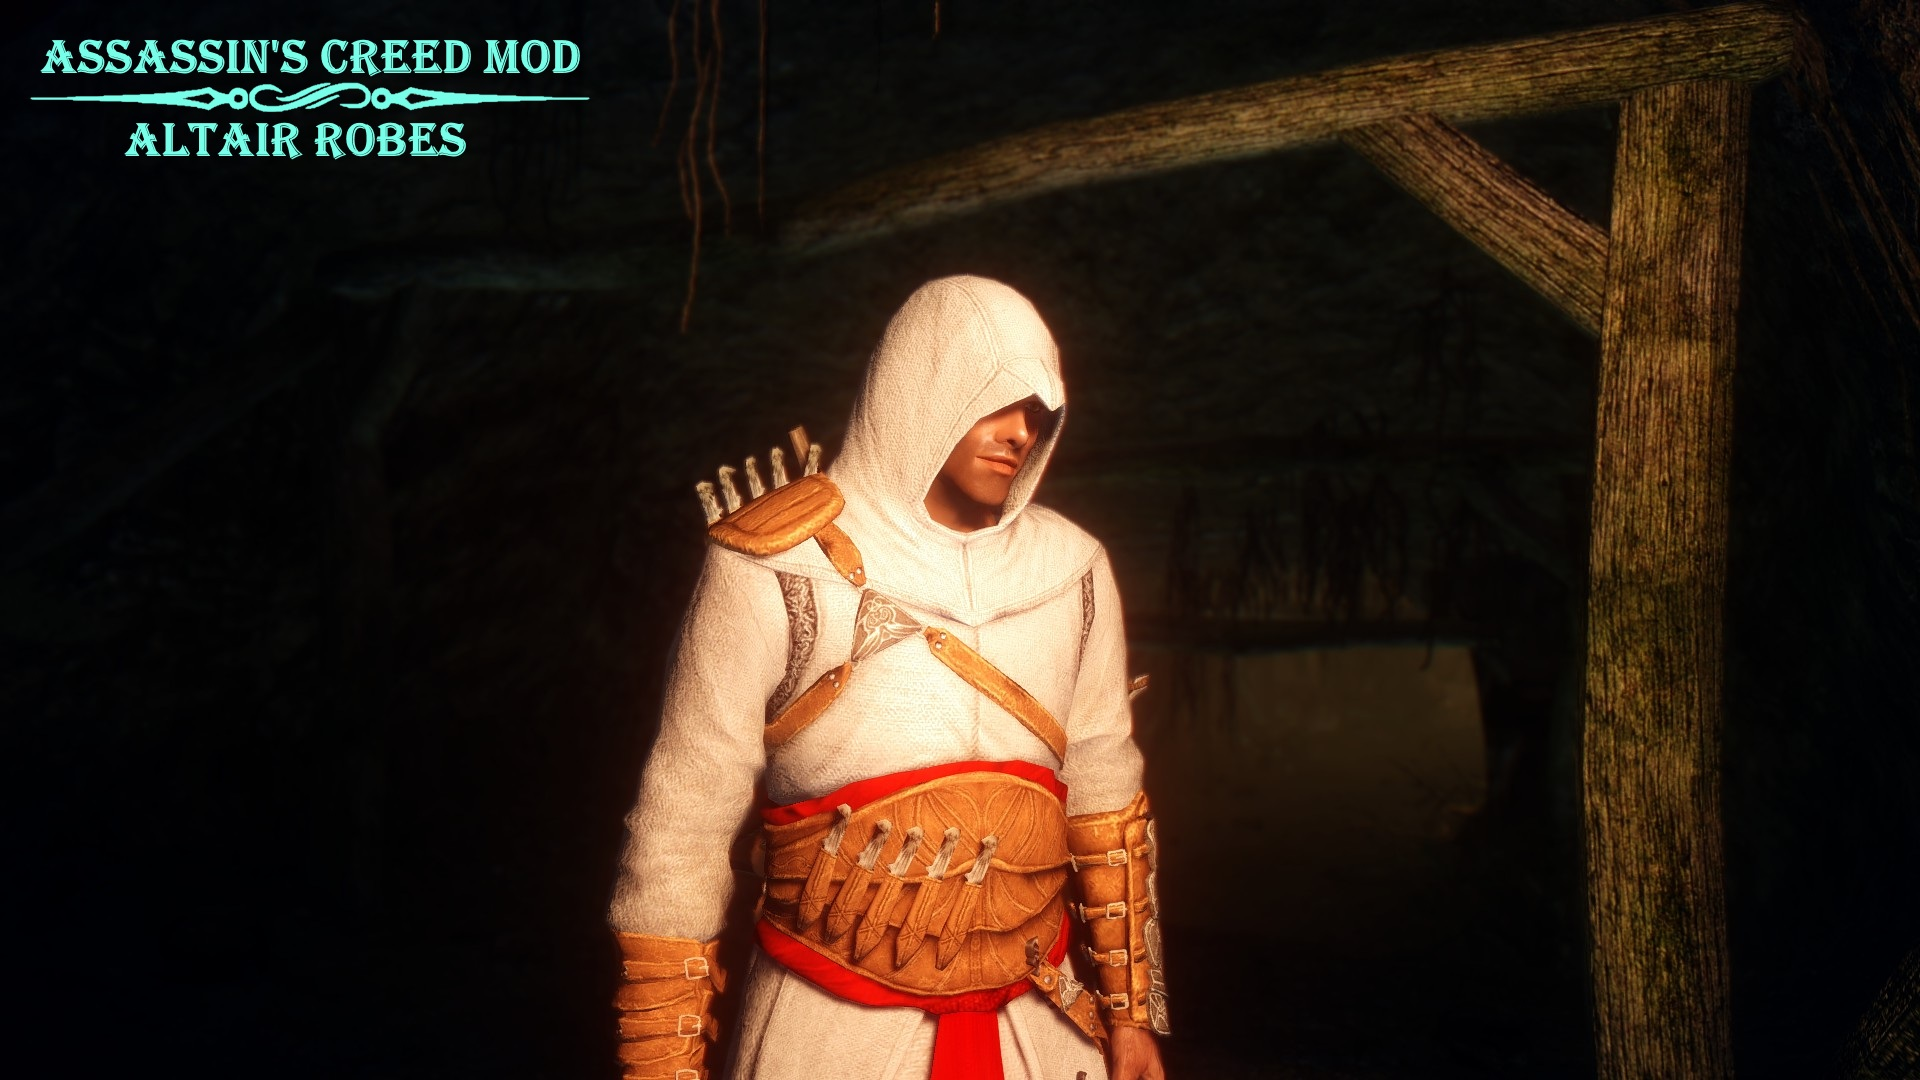 Assassin's_Creed_Mod_Altair_Robes.jpg